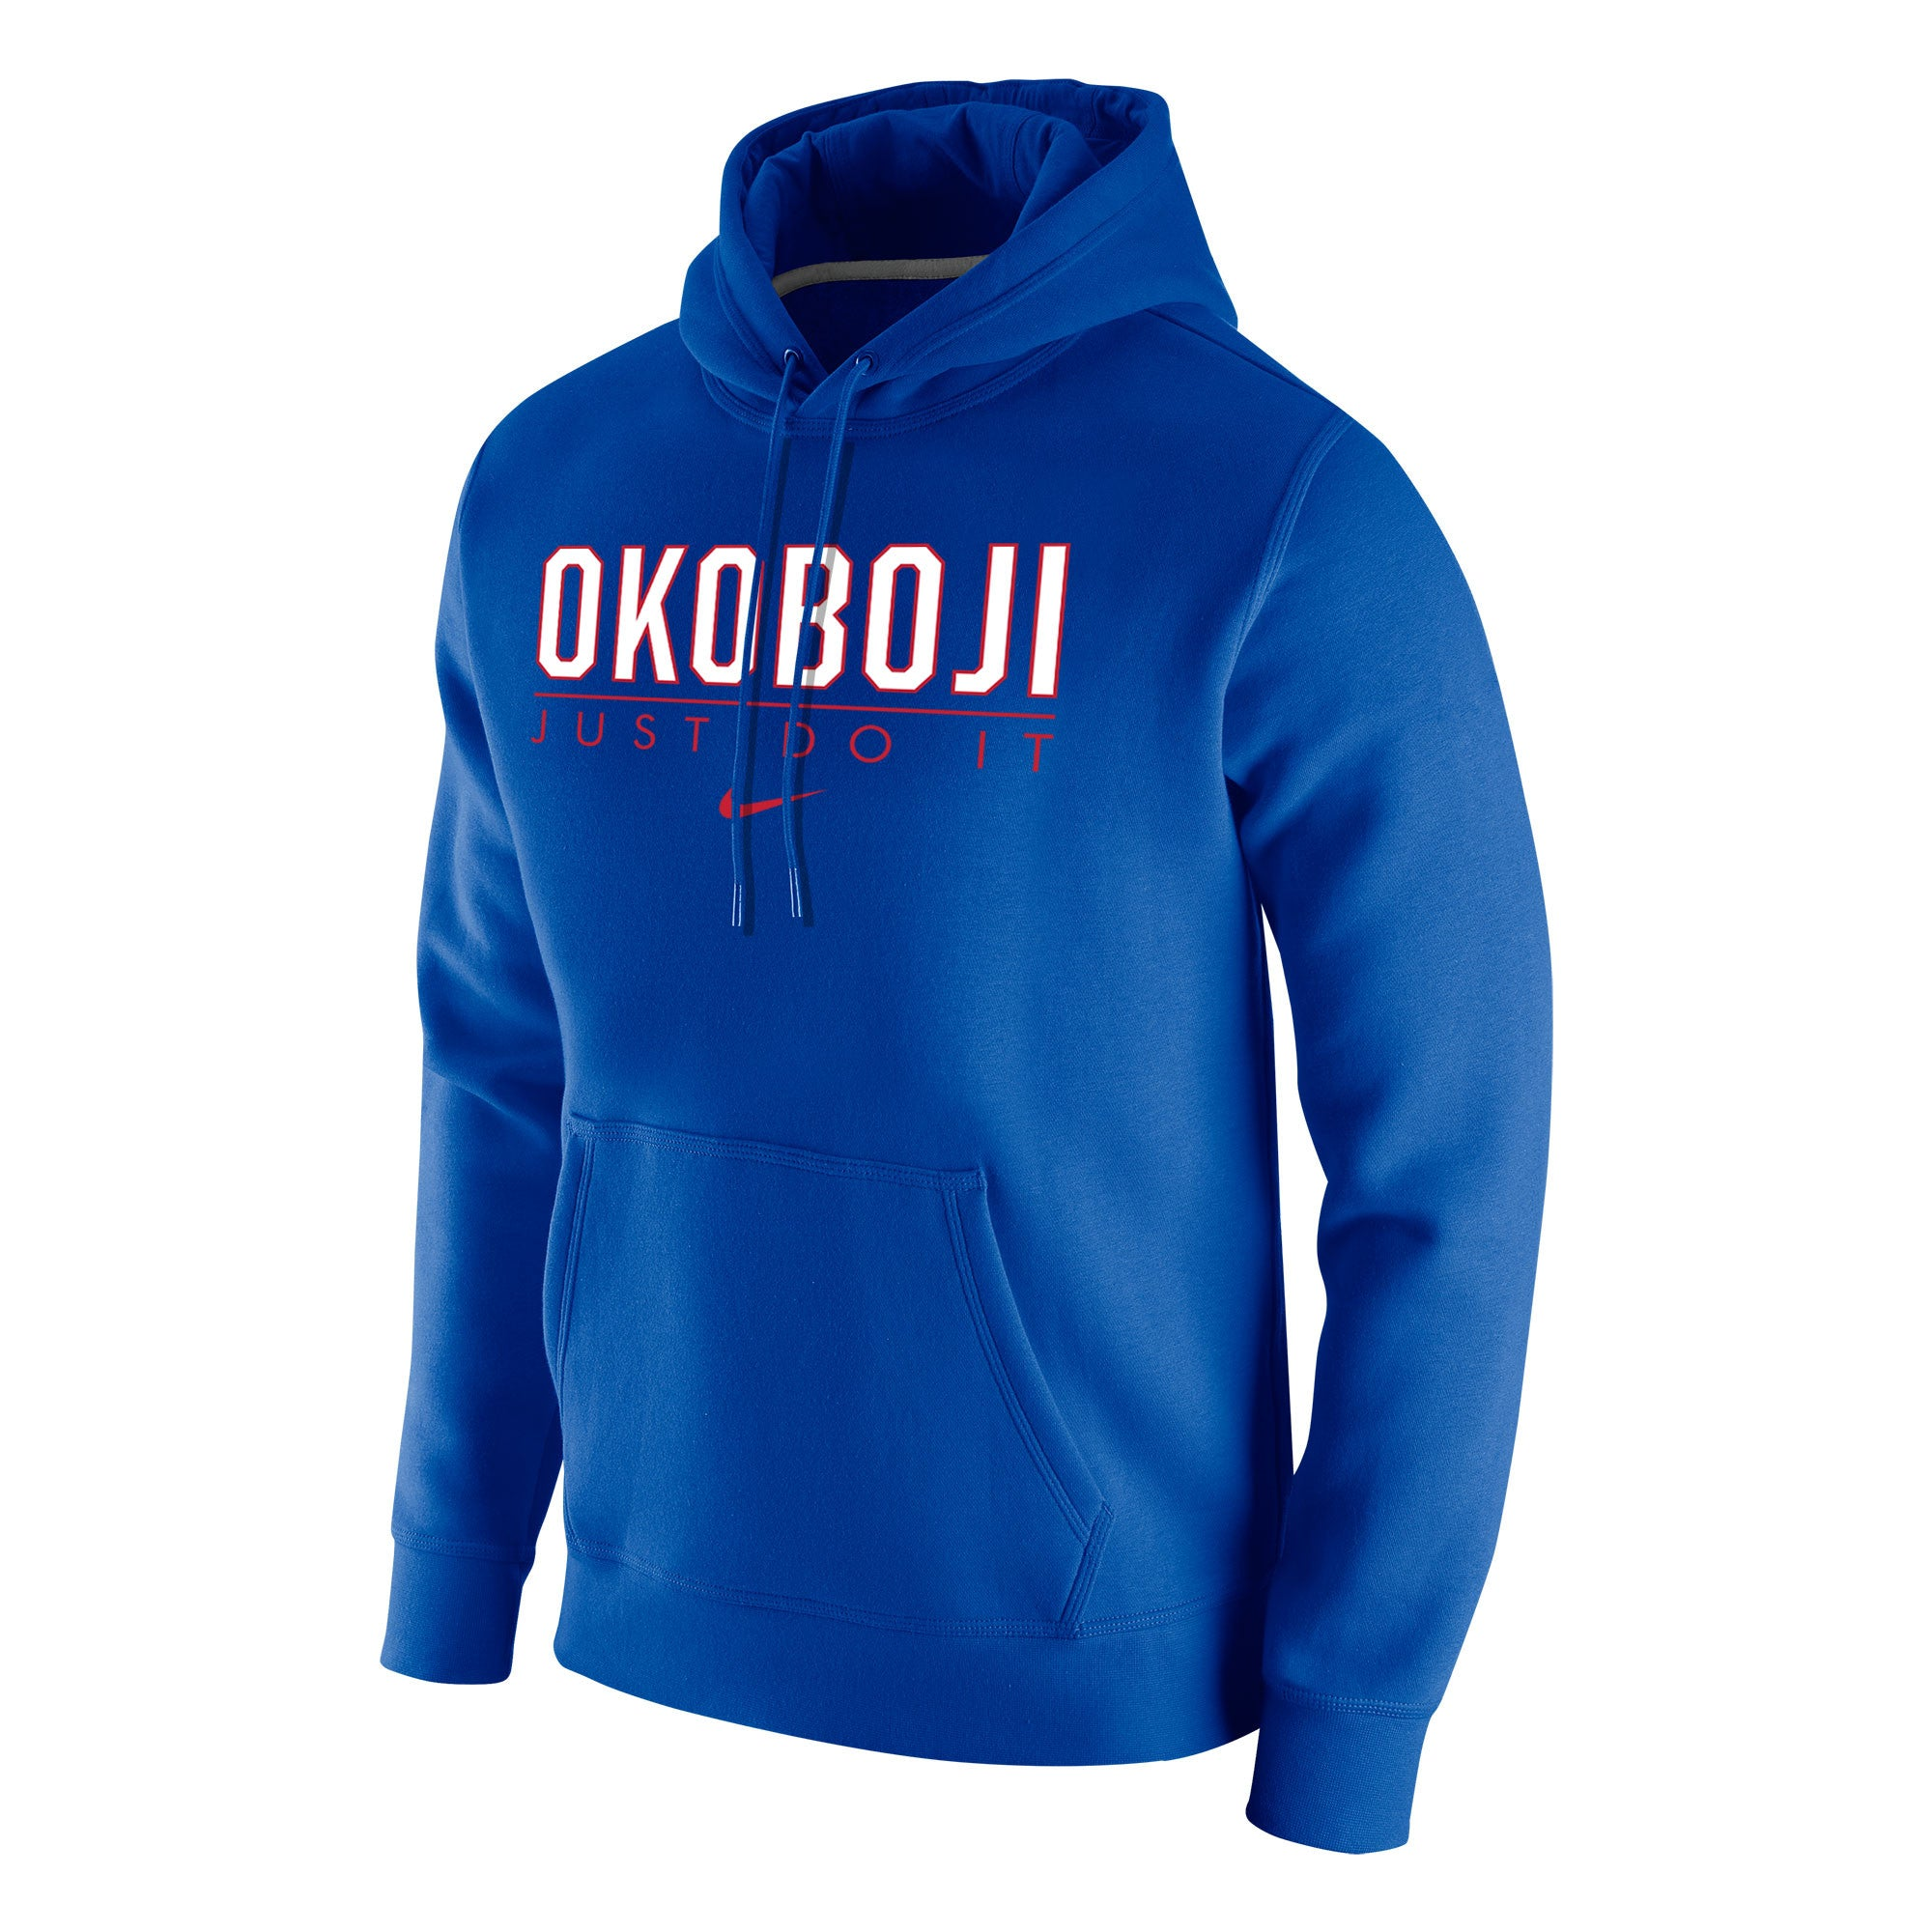 Men's Stadium Club Fleece Hoody by Nike - Royal